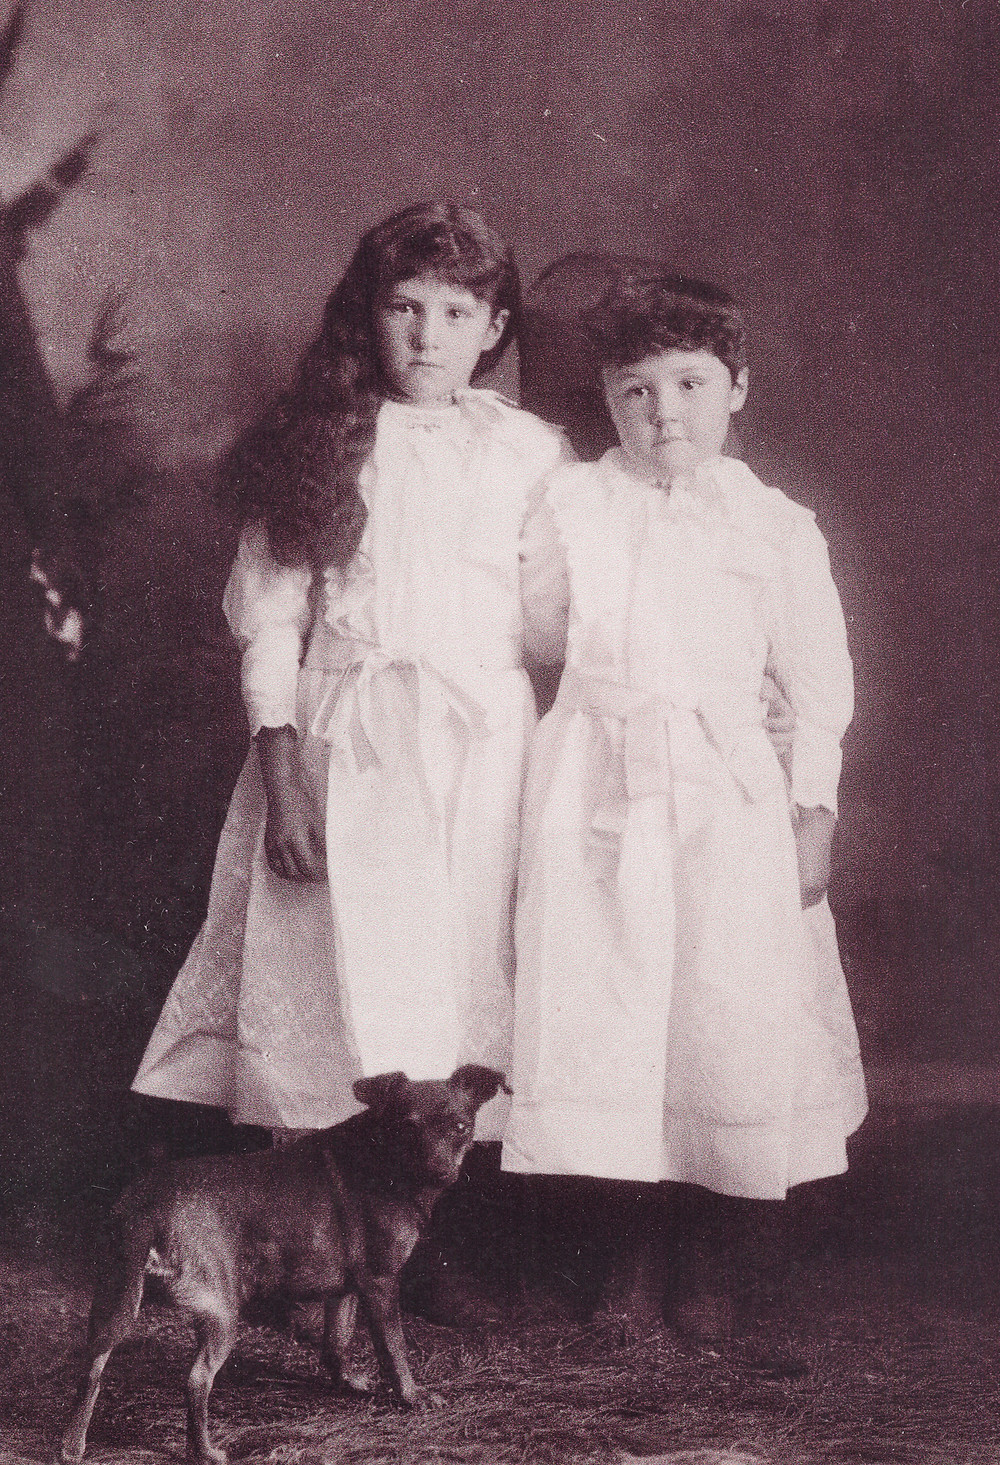 Getha and Jennie Munds, Photo courtesy of Frank Benedict, the Pinewood News